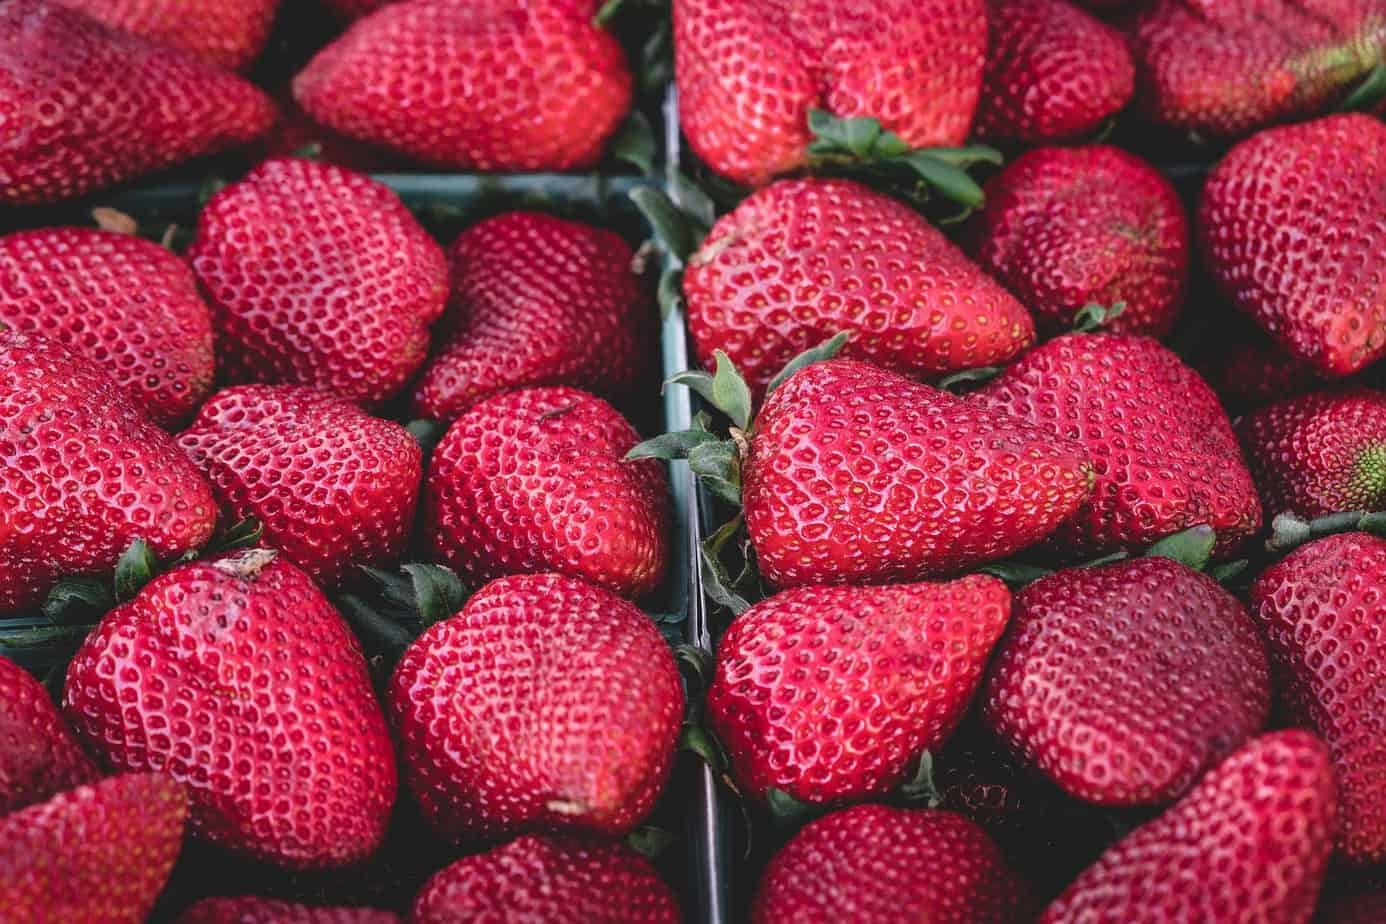 Fresh strawberries in boxes.